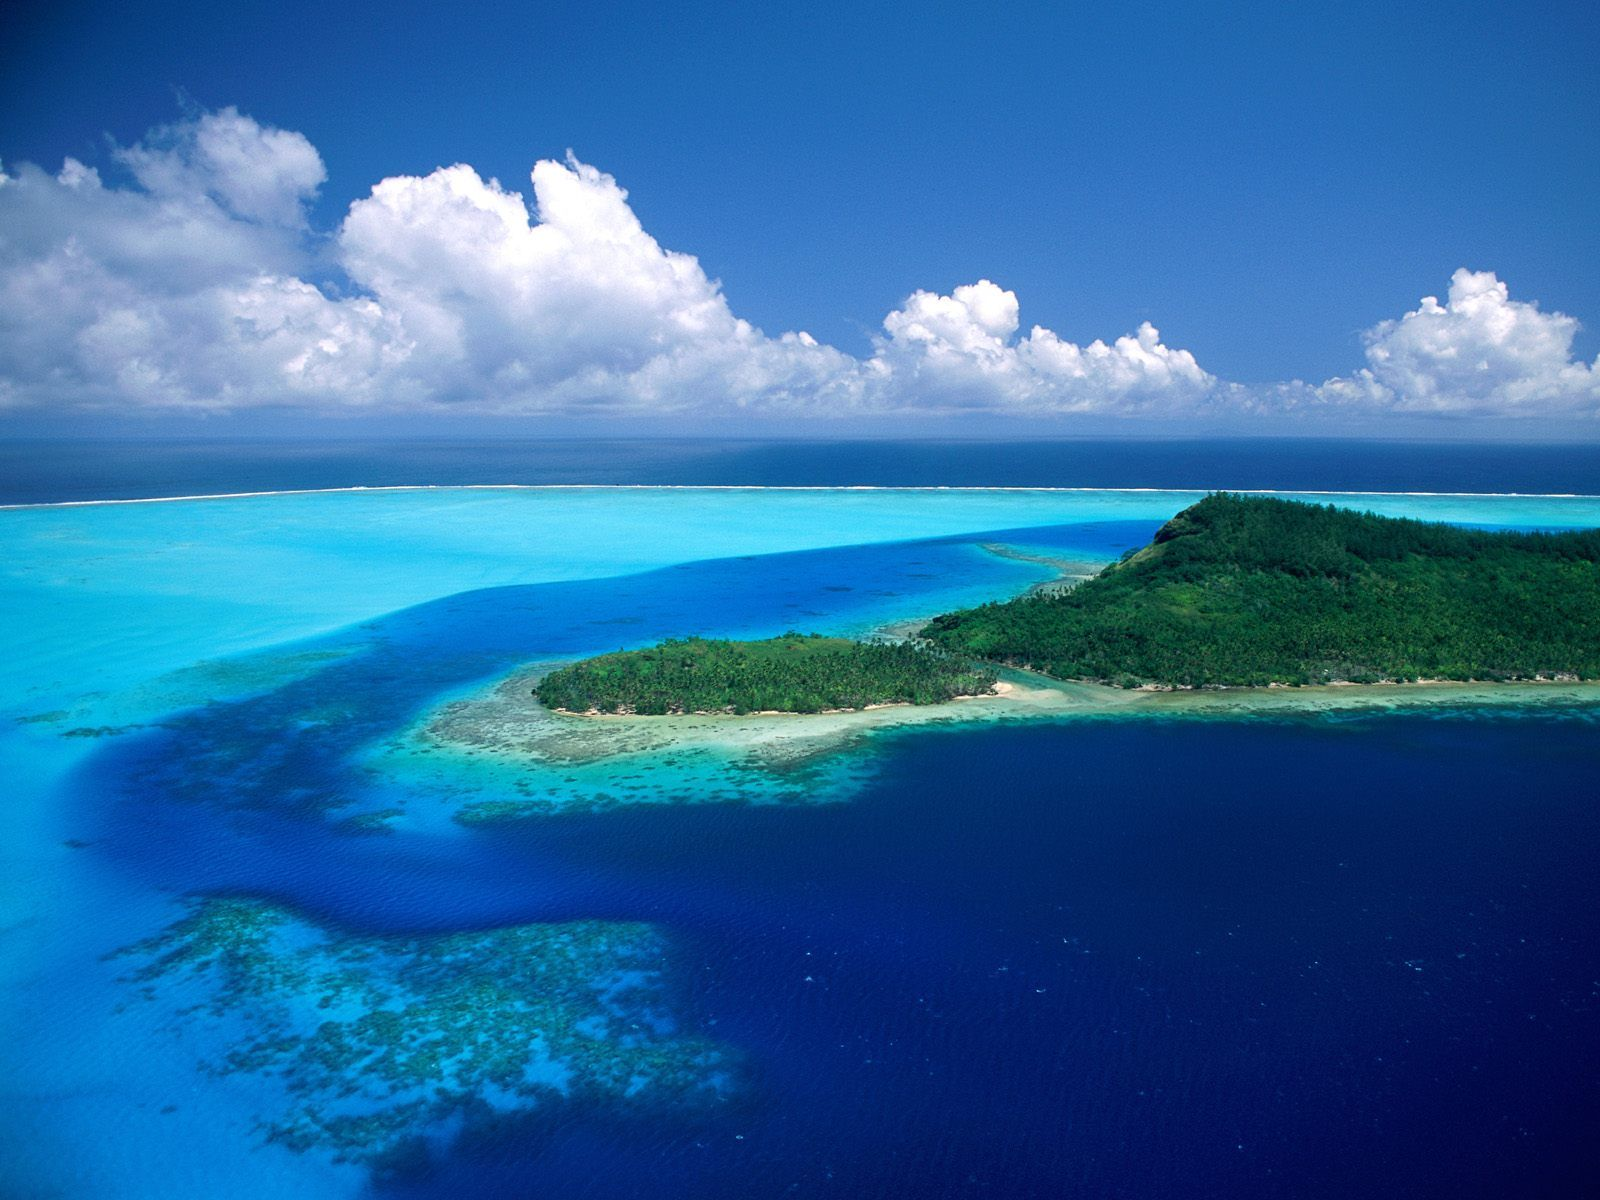 1600x1200 Pacific Island desktop PC and Mac wallpaper 1600x1200